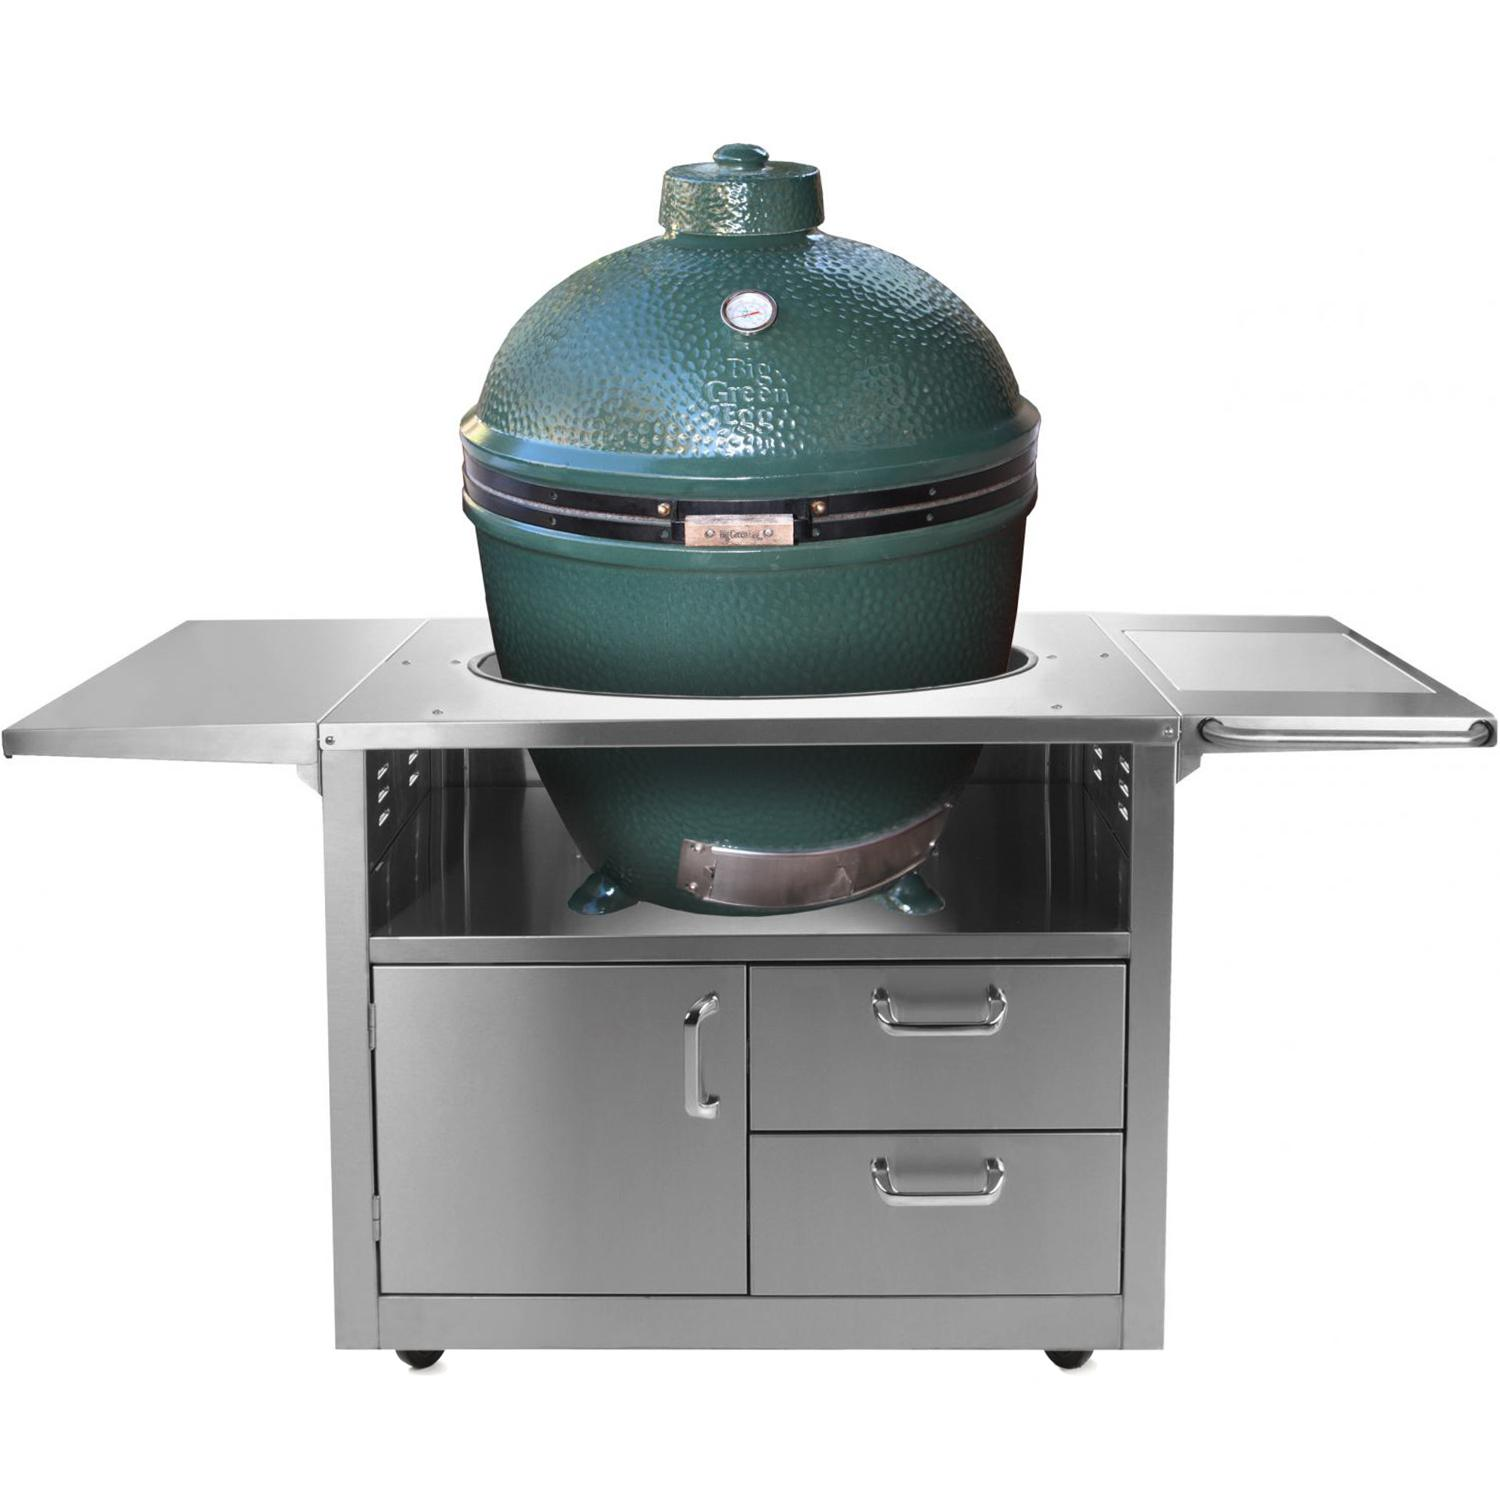 Stainless Steel Cart For Extra Large Big Green Egg Cerami...